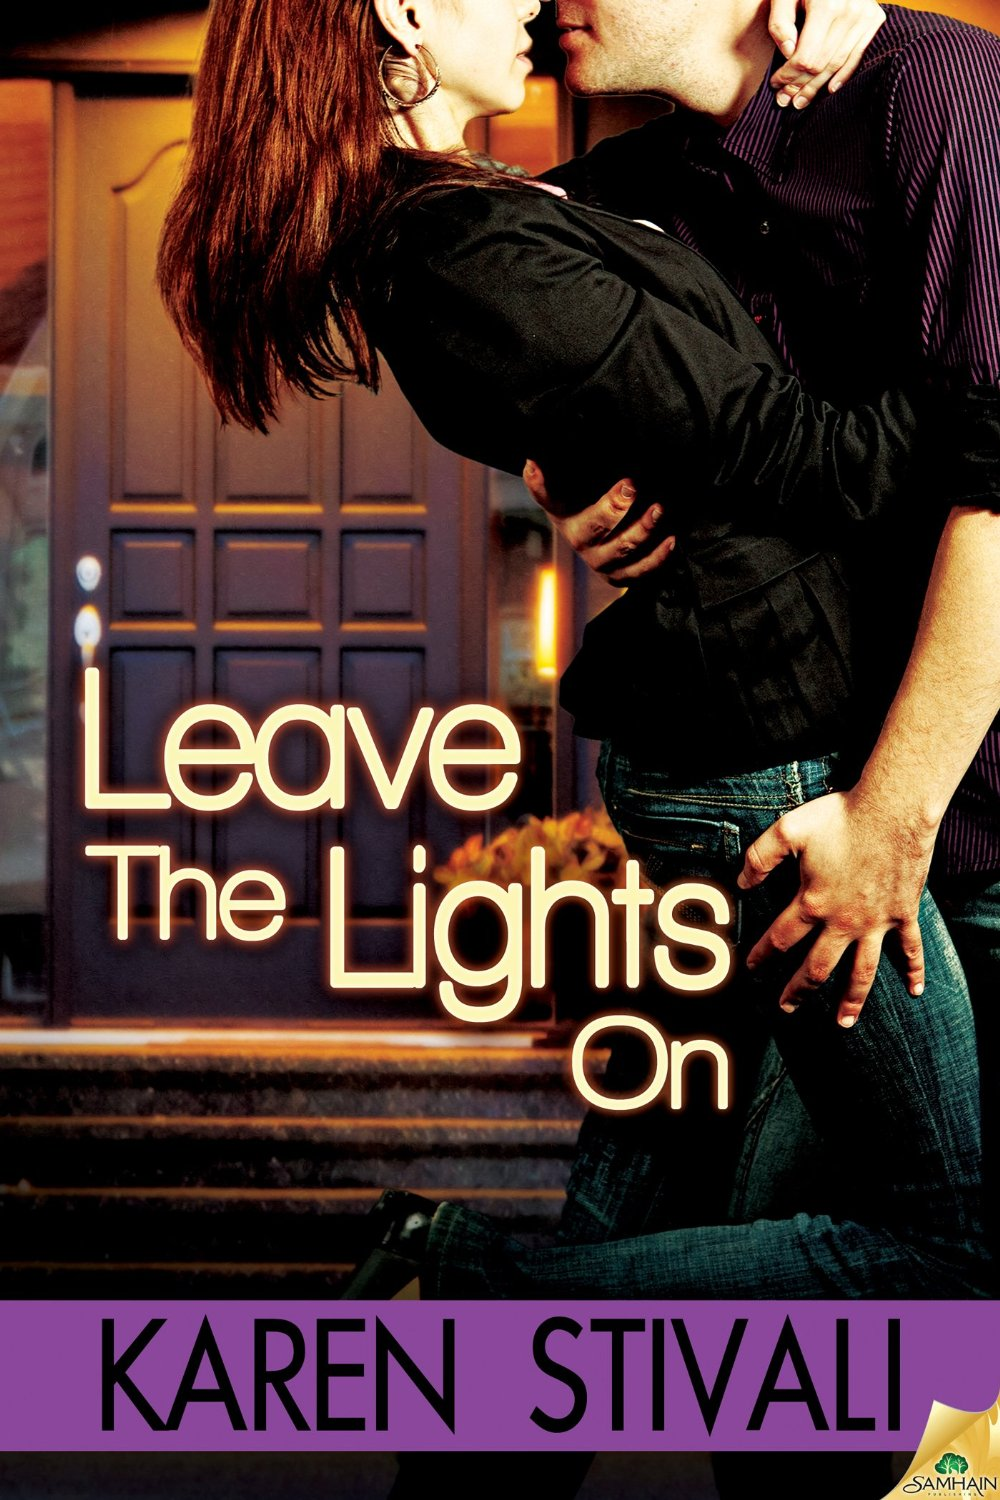 Book Review: Leave The Lights On by Karen Stivali